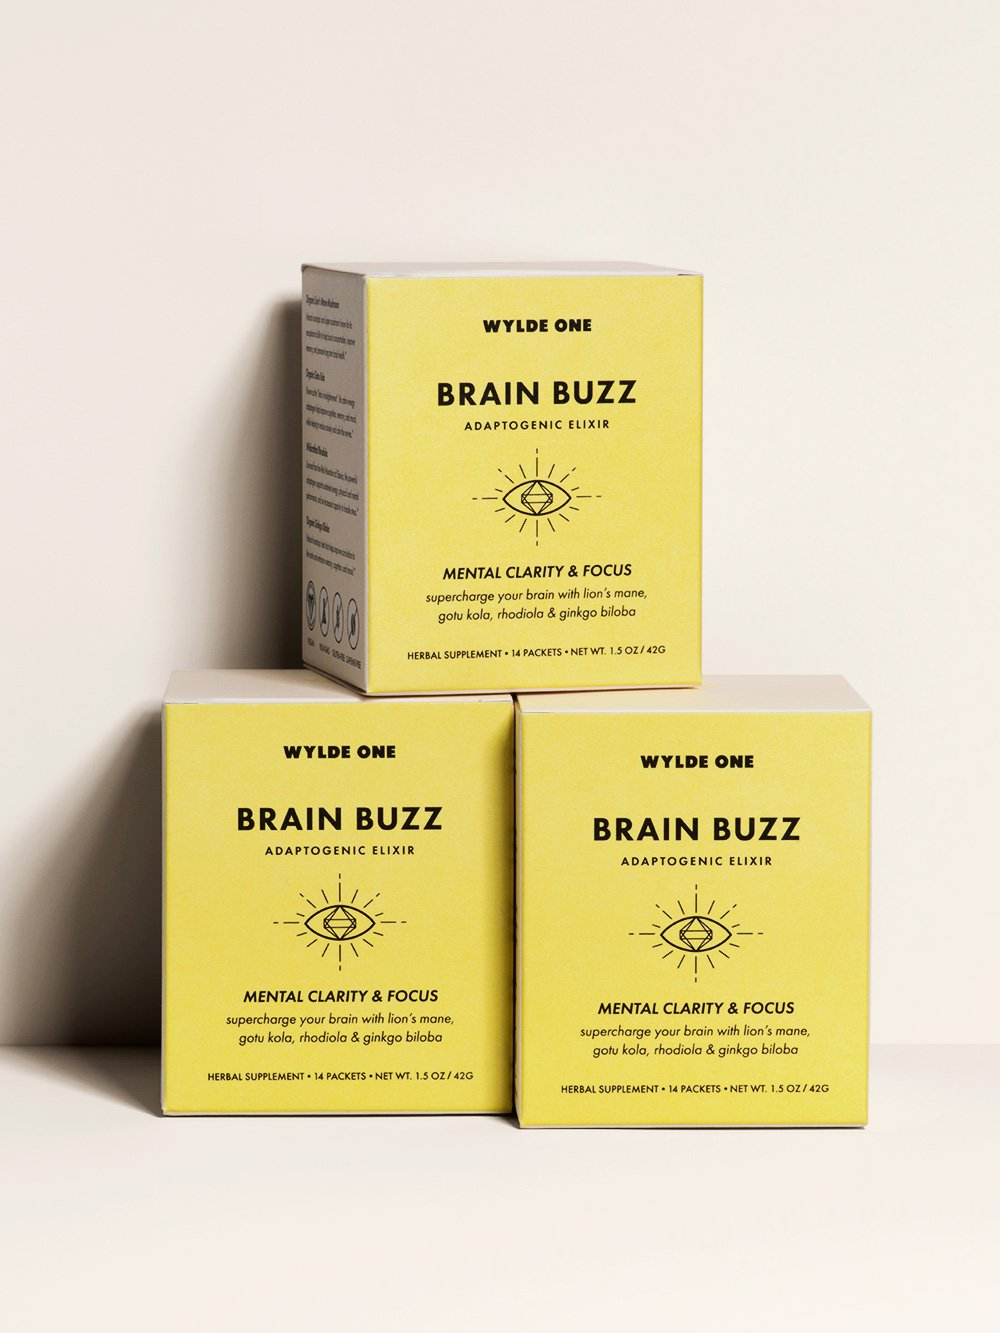 Brain Buzz Adaptogenic Elixir